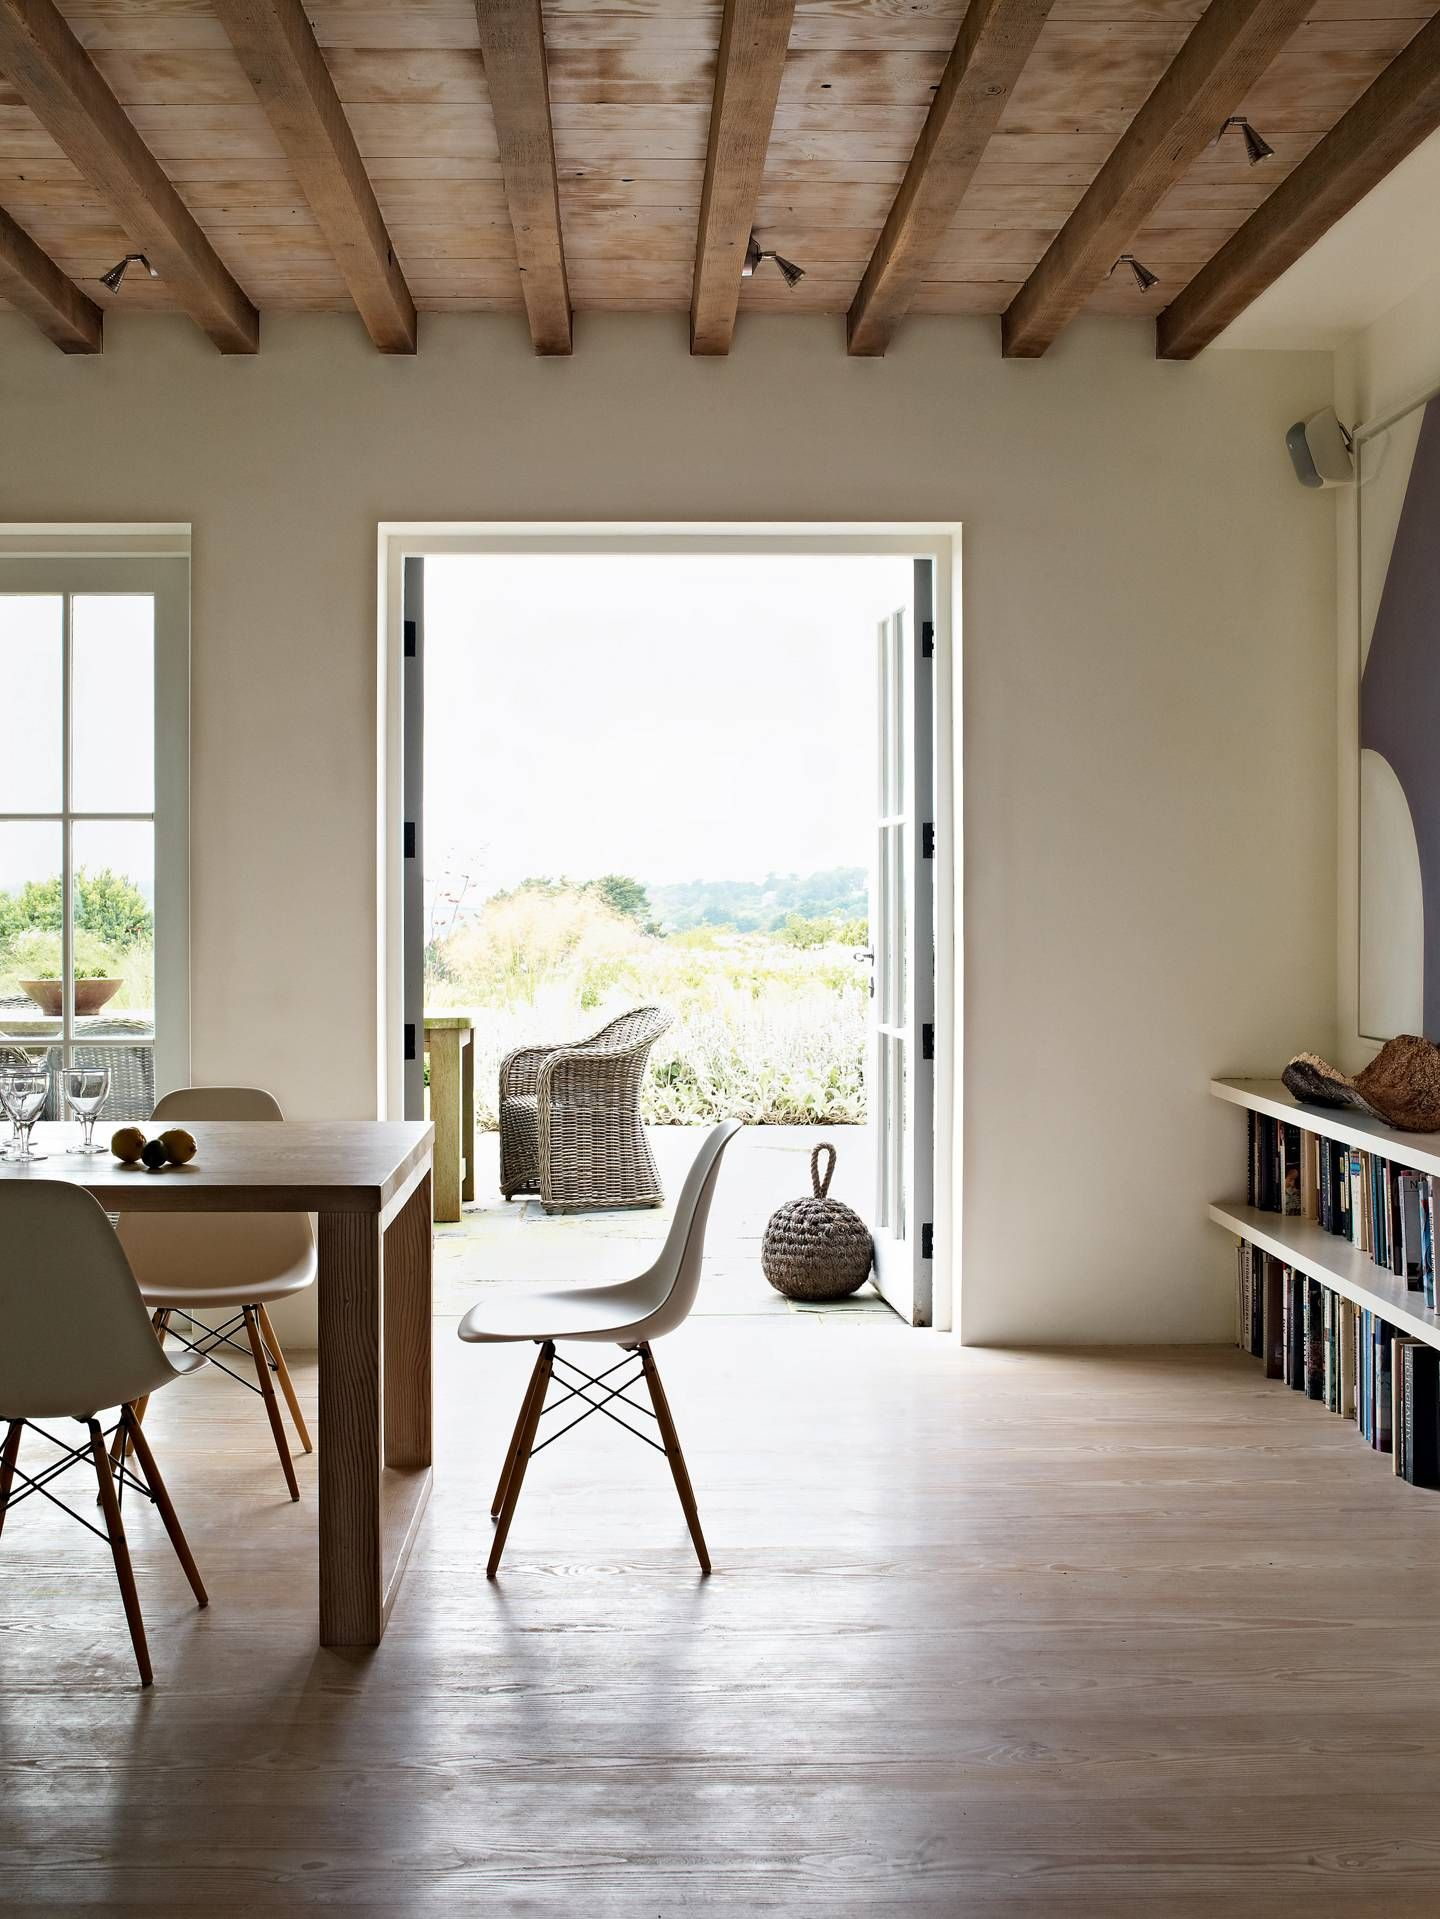 The pure, lightfilled spaces of a Cornish house by Marion